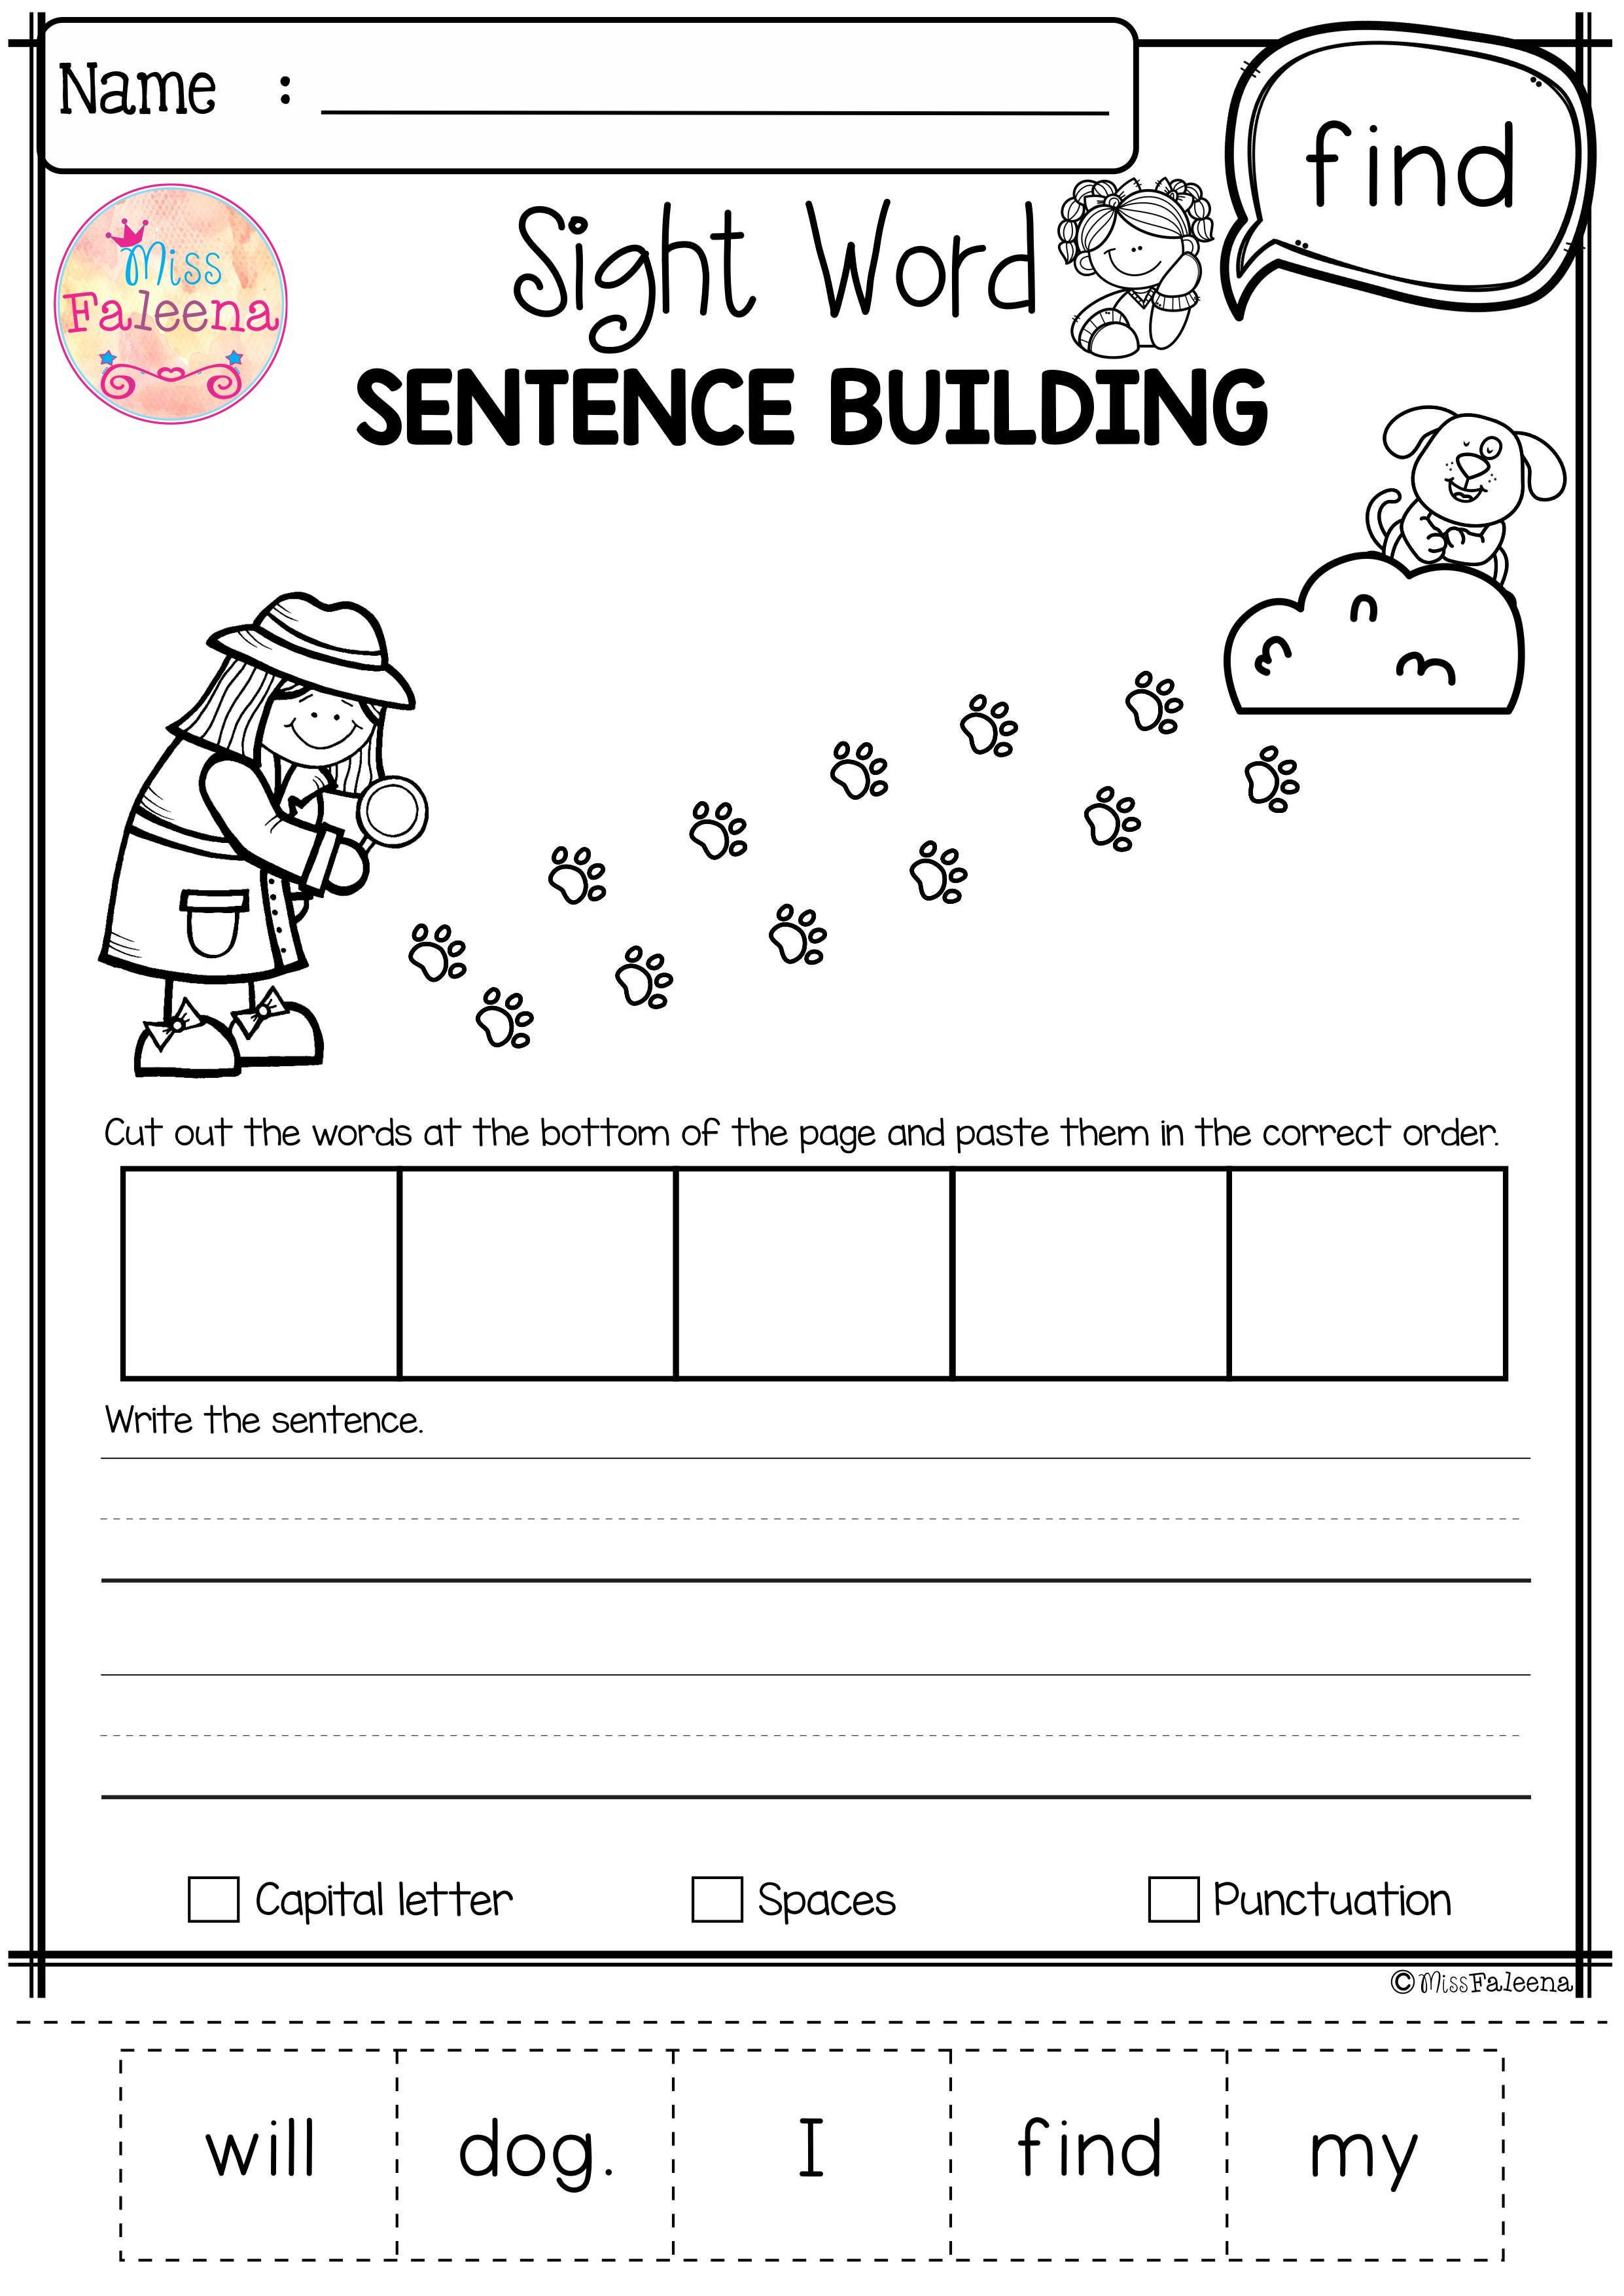 Sight Word Sentence Building Pre Primer Has 40 Pages Of Sentence Building Worksheets This Produc Pre Kindergarten Sight Words Sight Word Sentences Sight Words